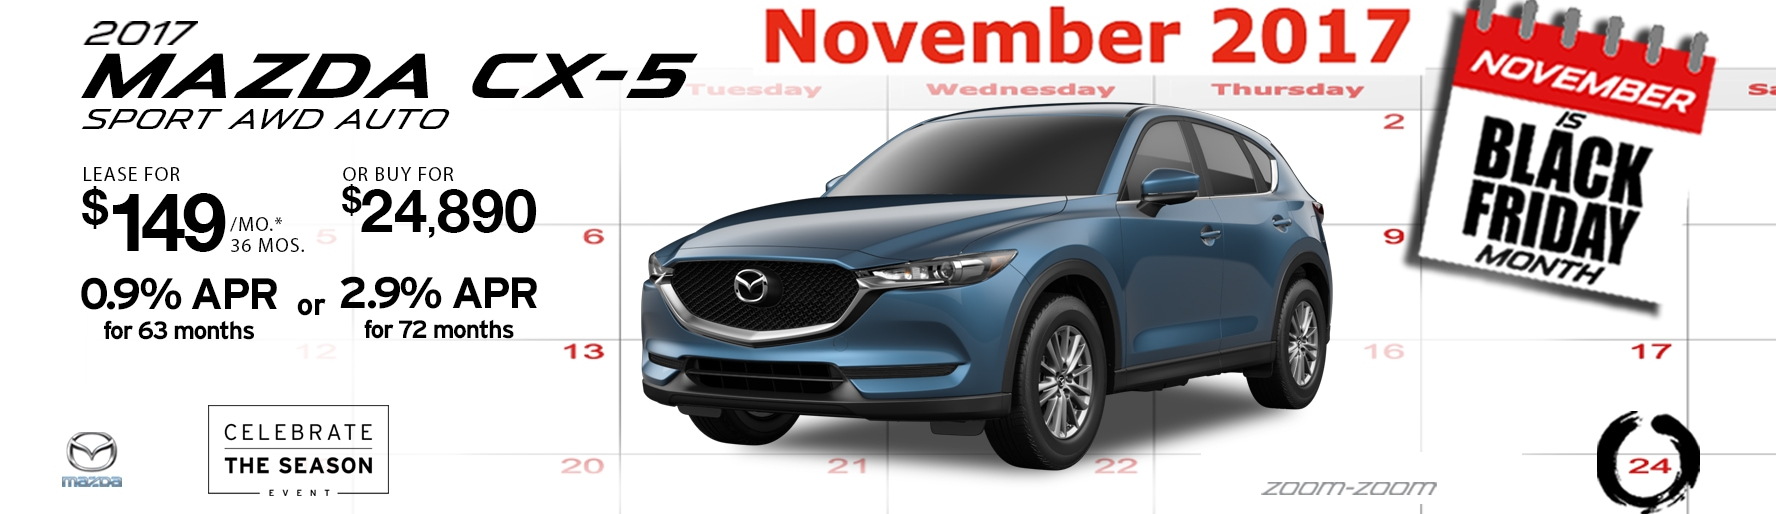 2017 Mazda CX-5 Sport AWD Auto Lease Special at Liberty Mazda